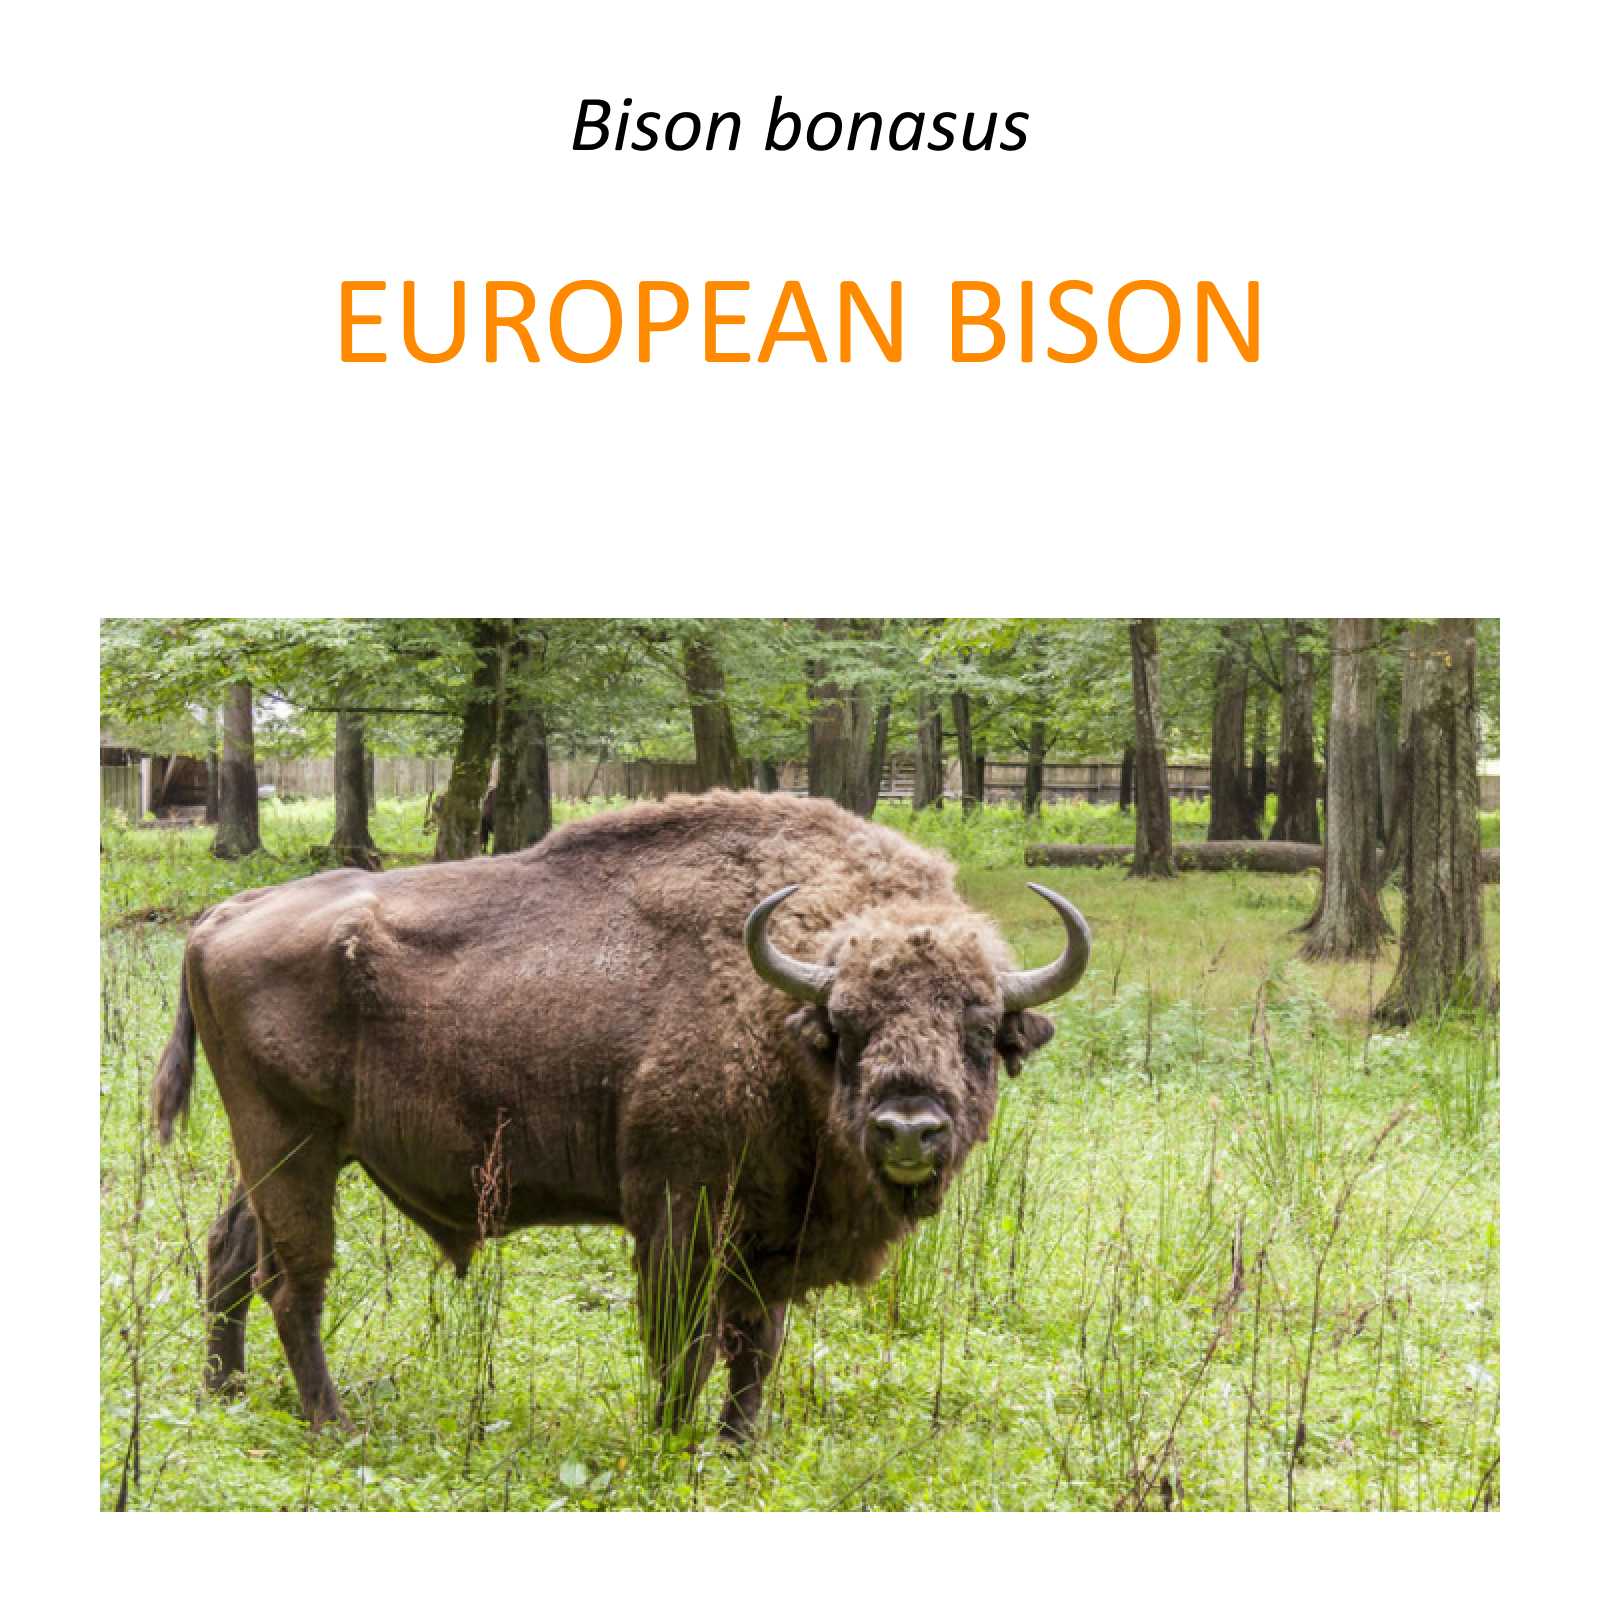 European bison conservation program